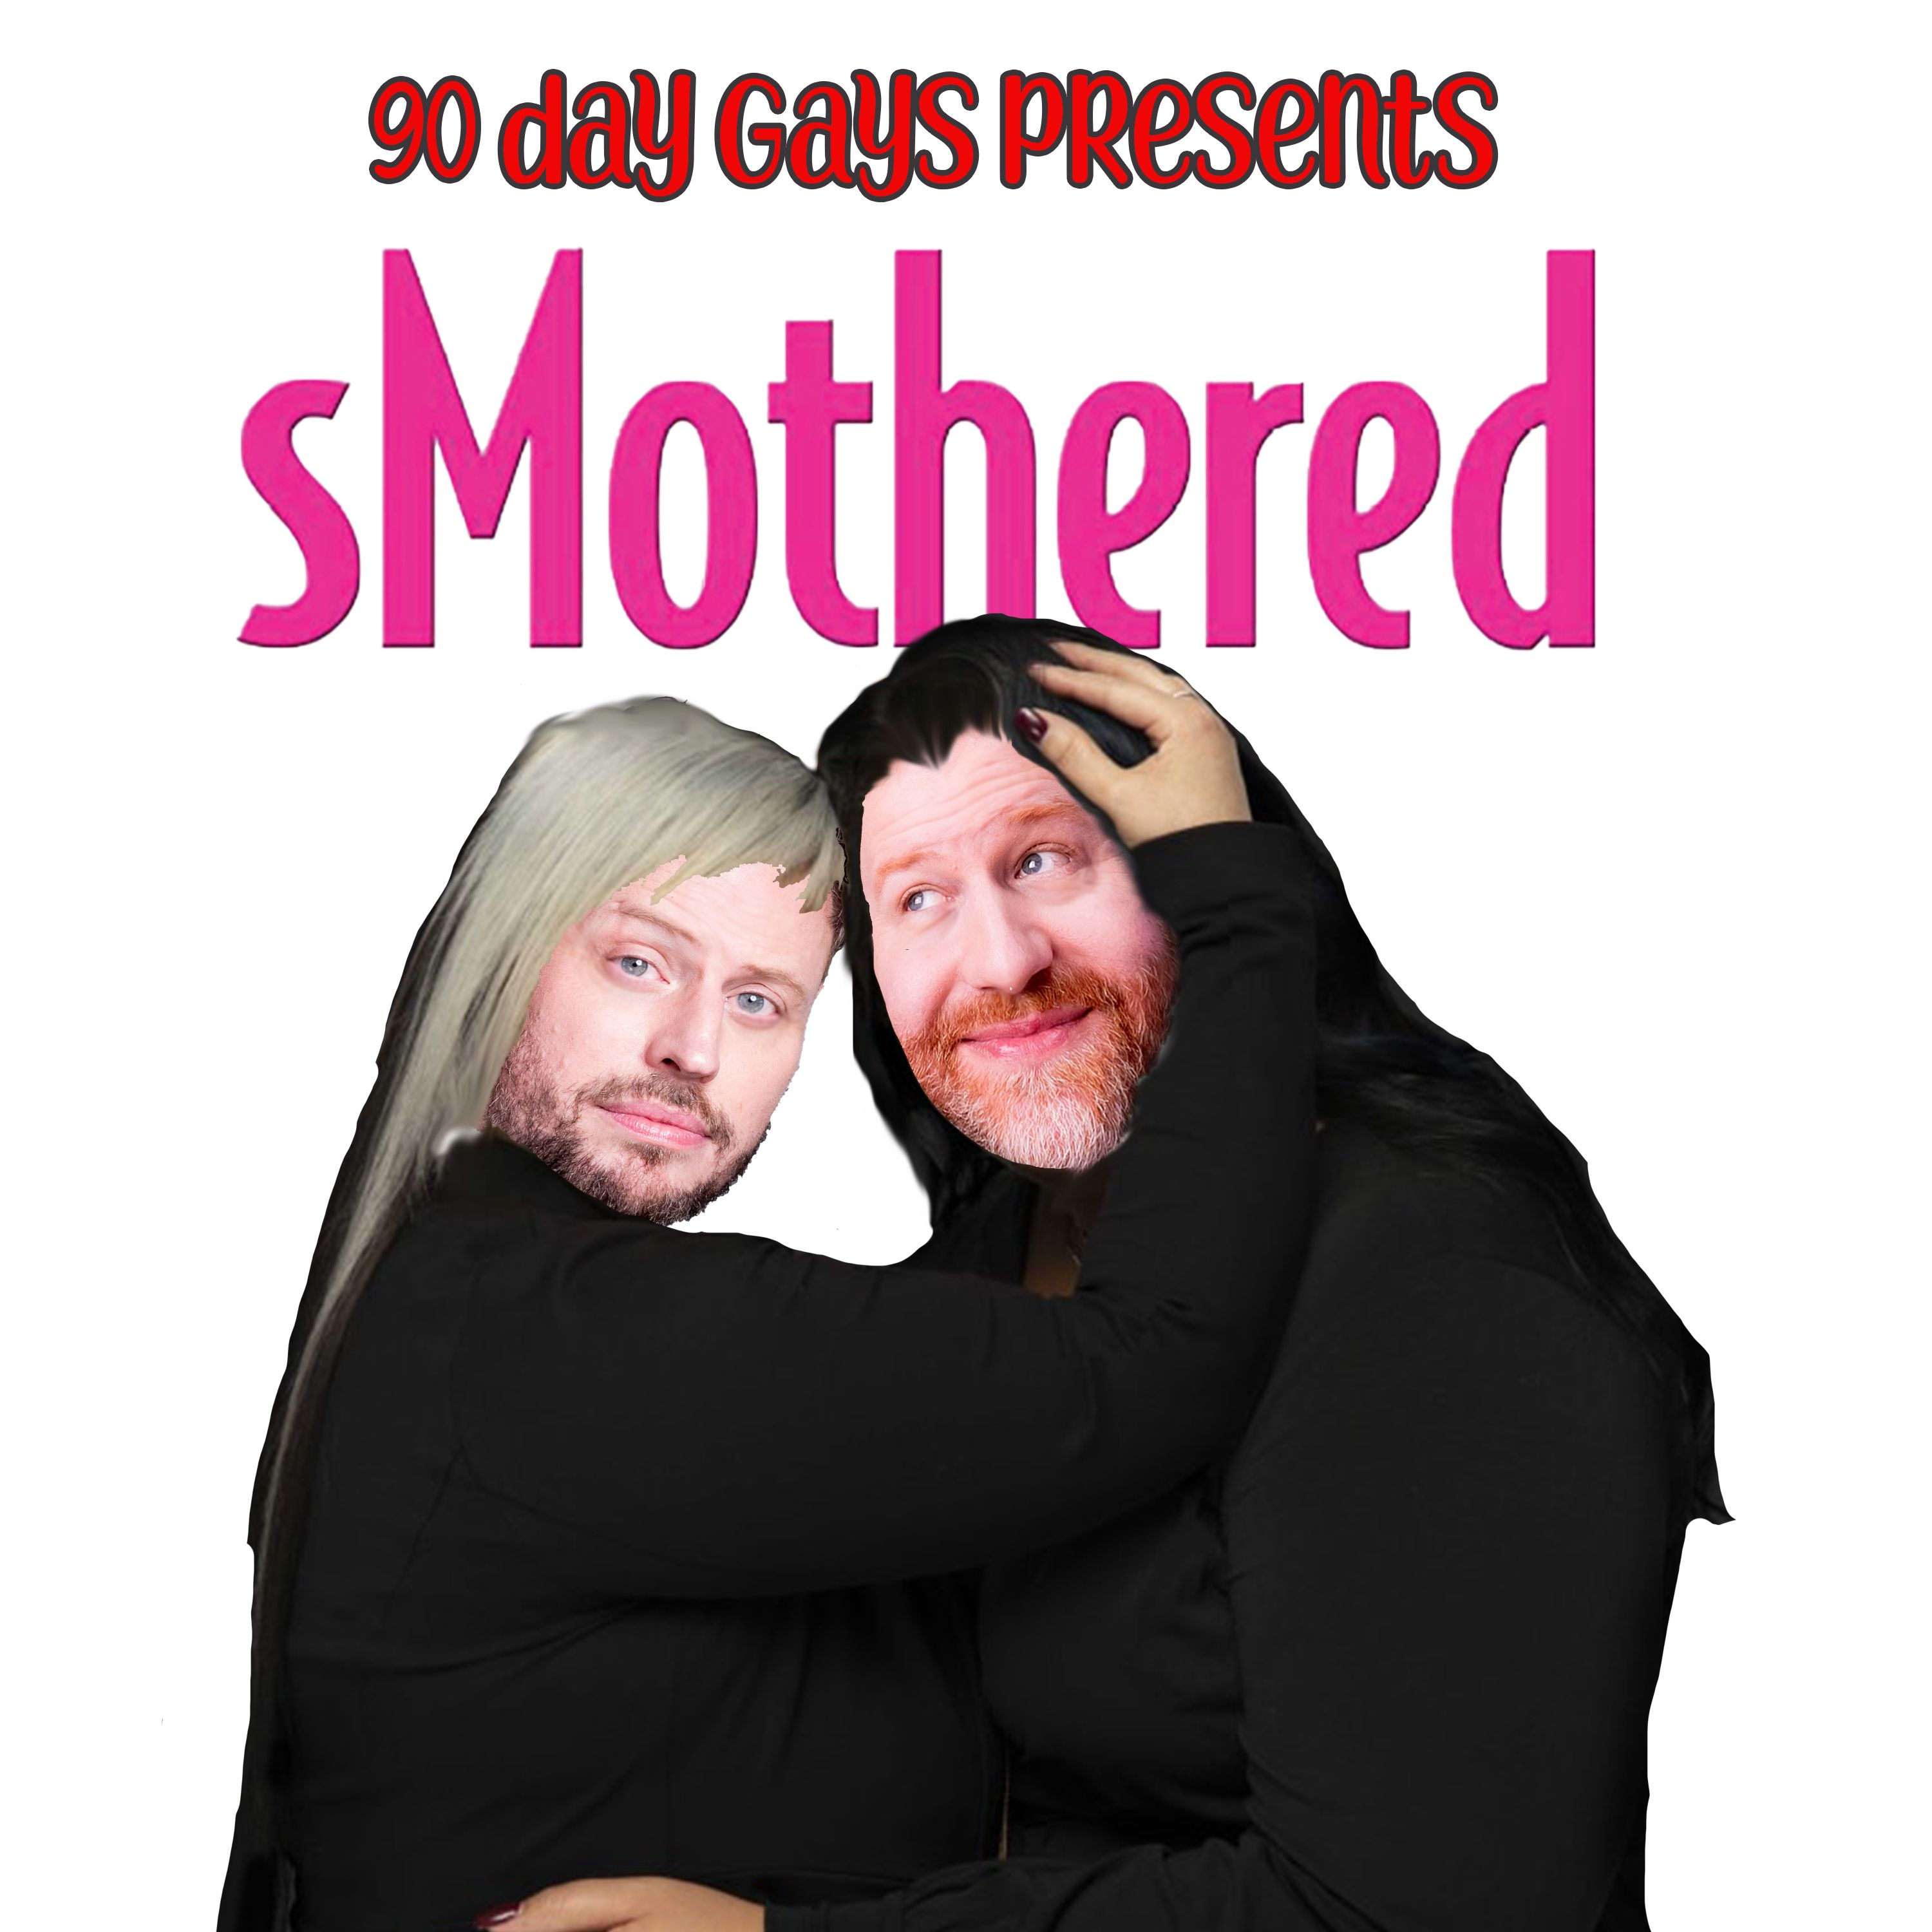 """90DG Presents Smothered: 0202 """"If Mom Can Do It, I Can Too"""""""